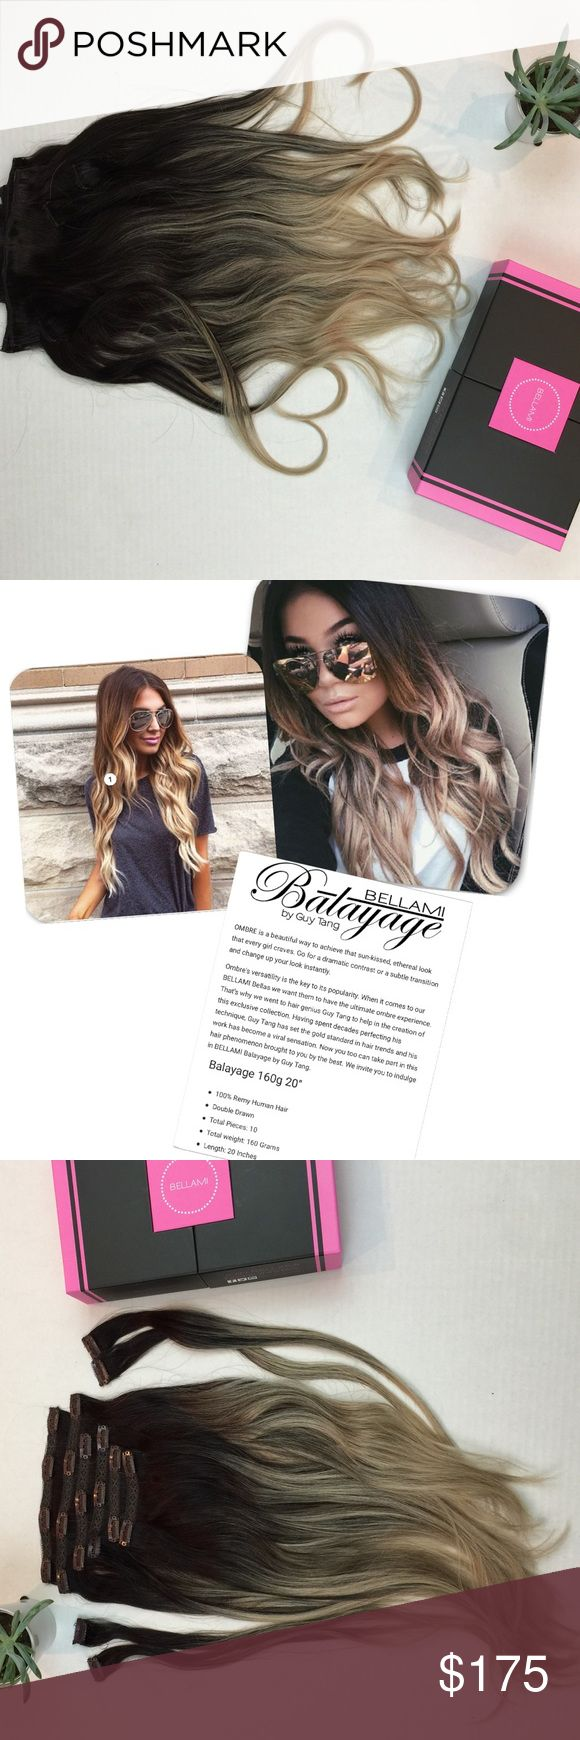 NEW ll • Bellami Balayage Hair Extensions PRICE FIRM • Trades • New In Box • Color: #1C/18 • Style: Bellami Balayage by Guy Tang • New in original package. Never Worn. • Total weight: 160 grams • Total Pieces: 10 • Length: 20 inches • 100% Remi Human Hair • Bag and Storage Box included • Balayage Range Contains: 1 x 8 inch wefts 1 x 7 inch wefts 2 x 6 inch wefts 2 x 4 inch wefts 4 x 1.5 inch wefts BELLAMI Other